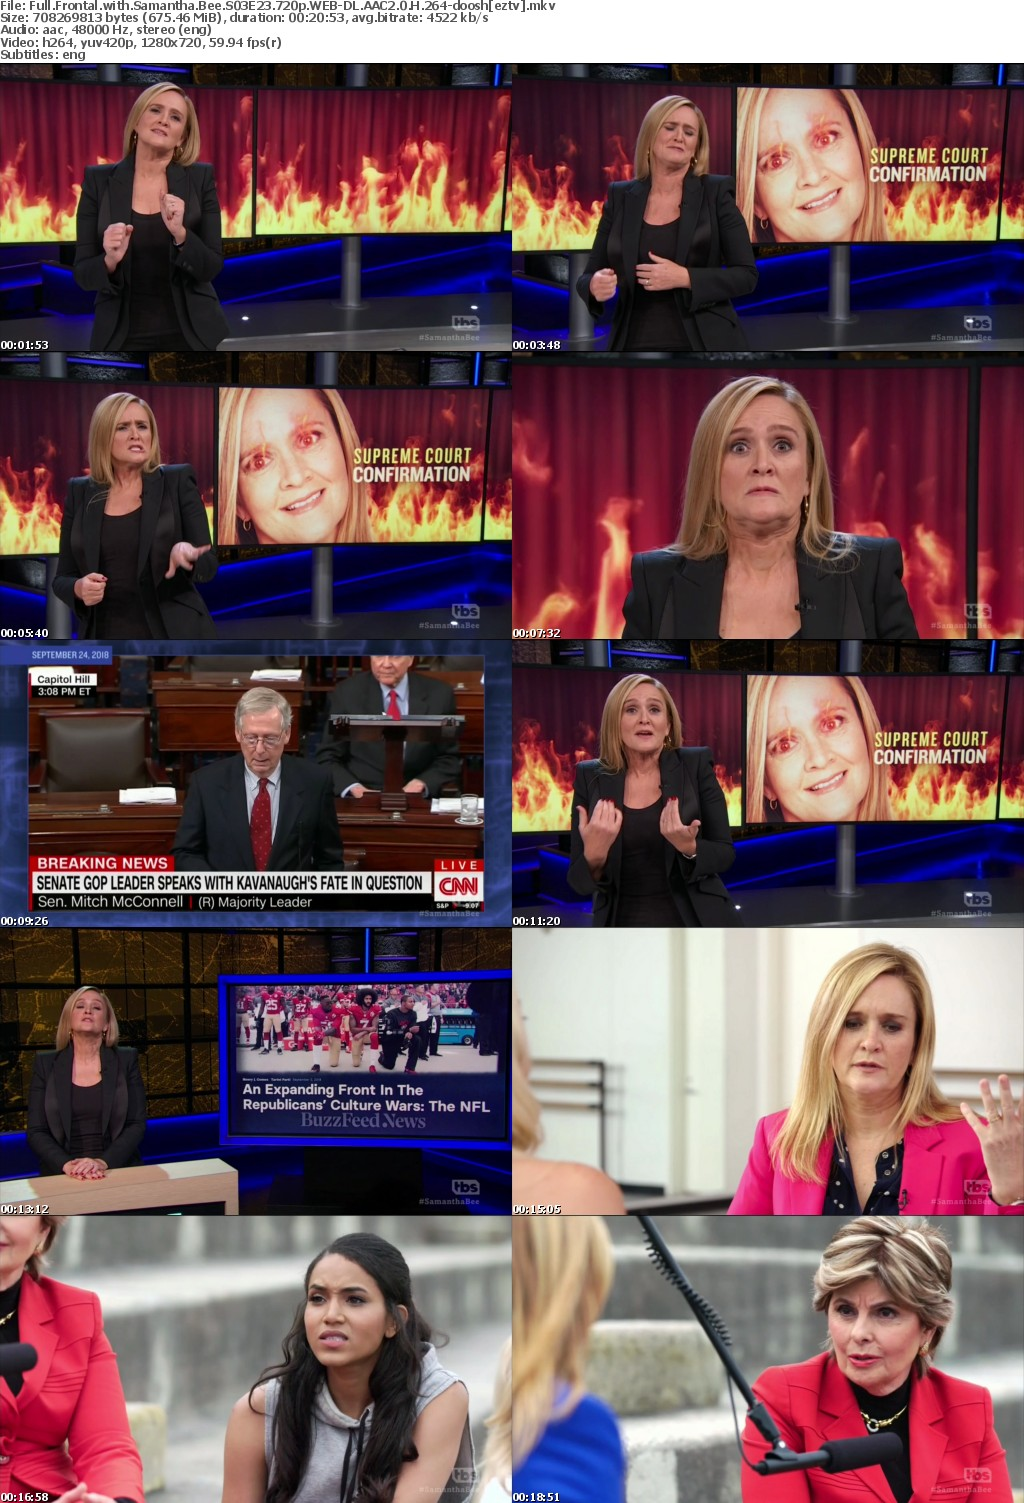 Full Frontal with Samantha Bee S03E23 720p WEB-DL AAC2 0 H 264-doosh